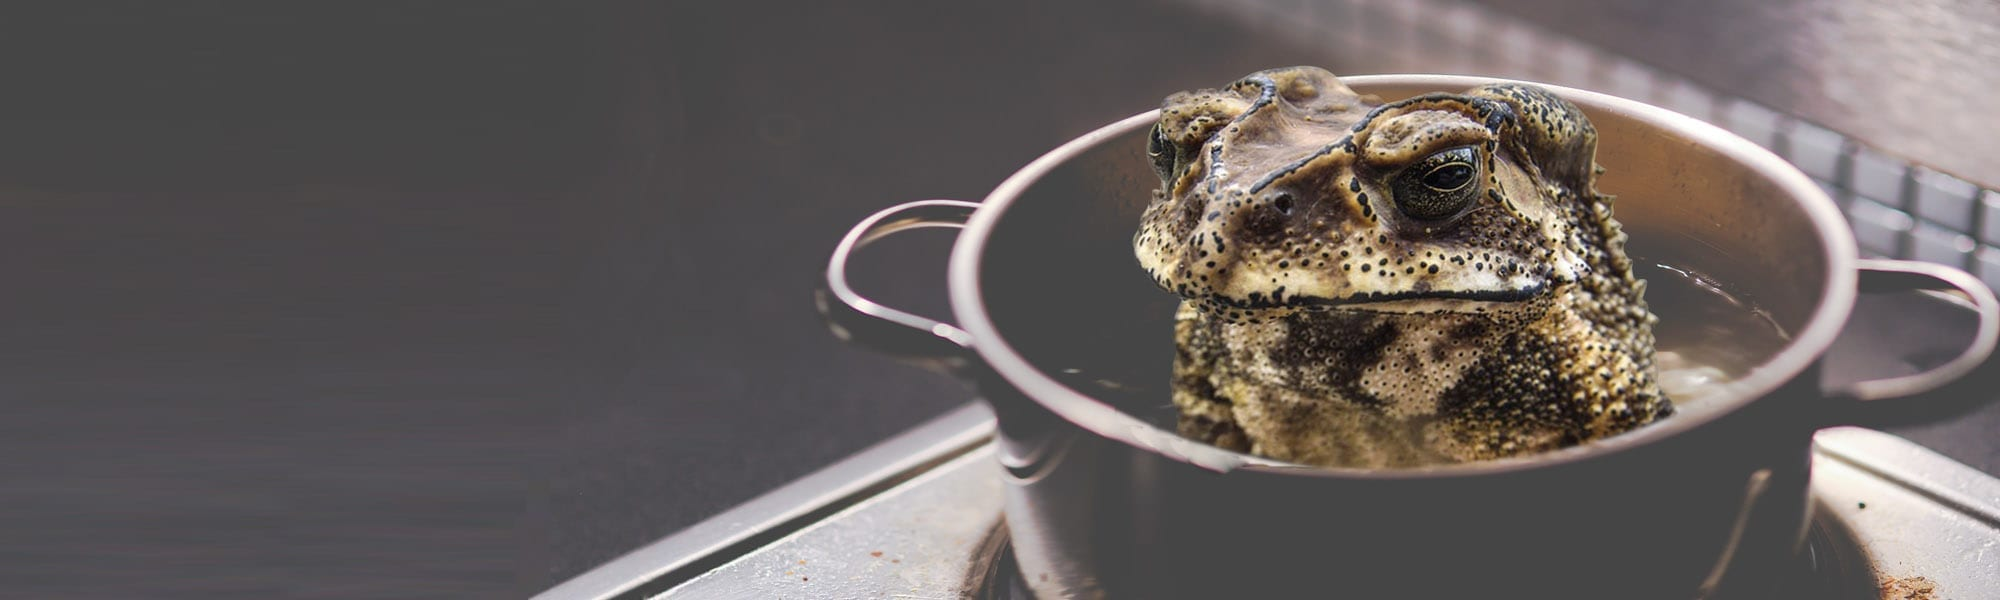 frog in pot recruitment banner